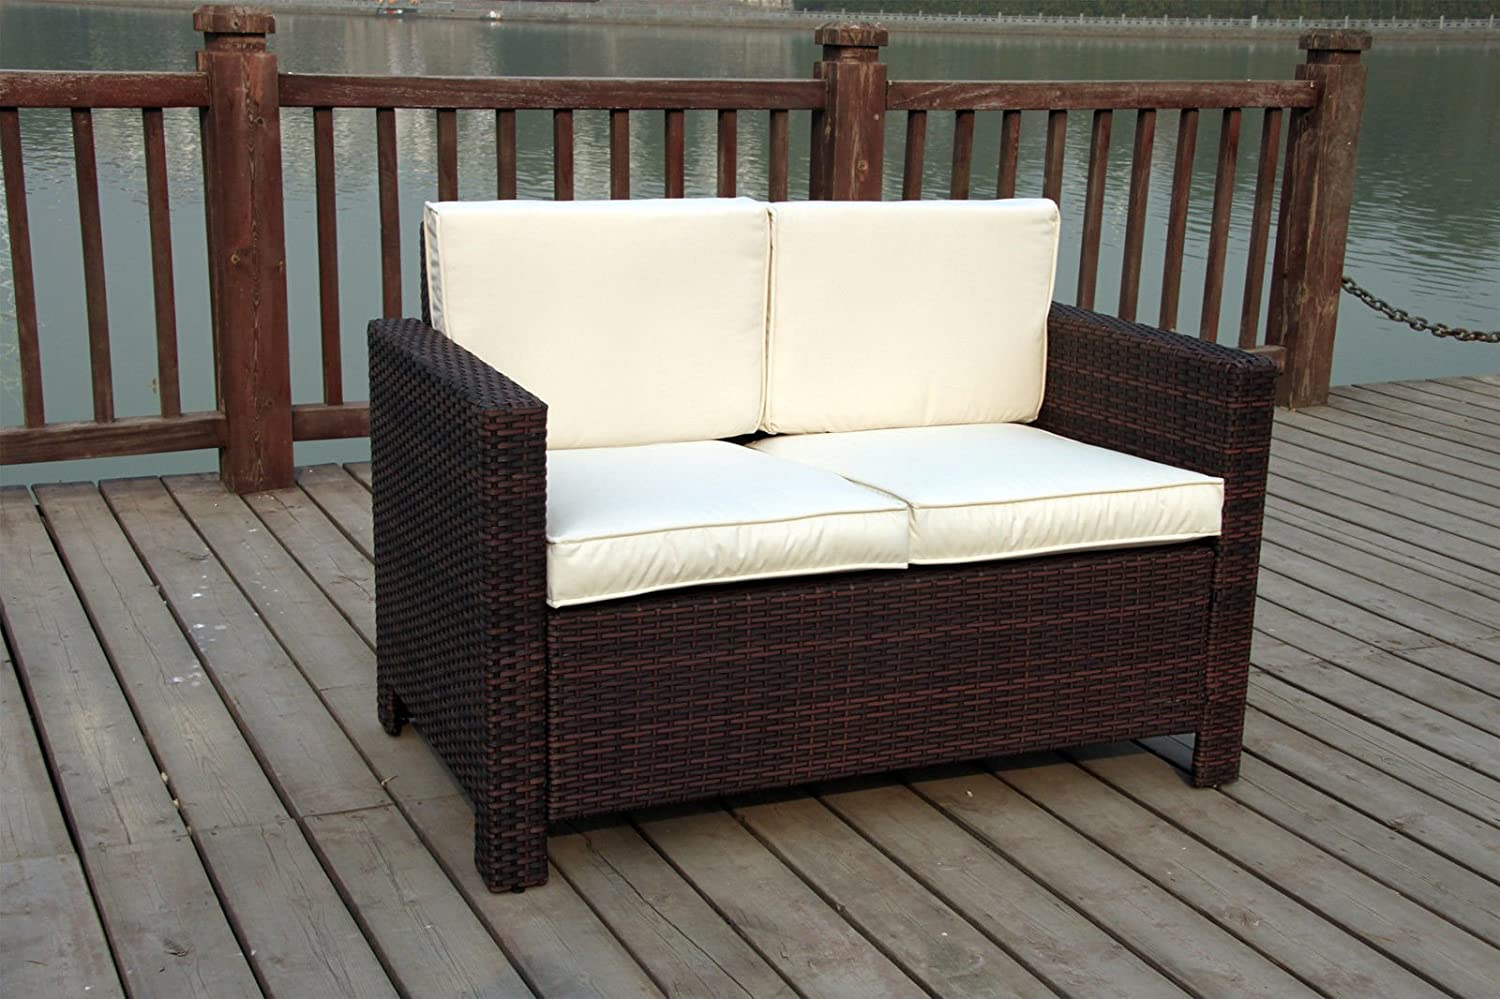 Neue Twin Rattan Geflecht Wintergarten im Garten Möbel Set Dark mixed brown online bestellen